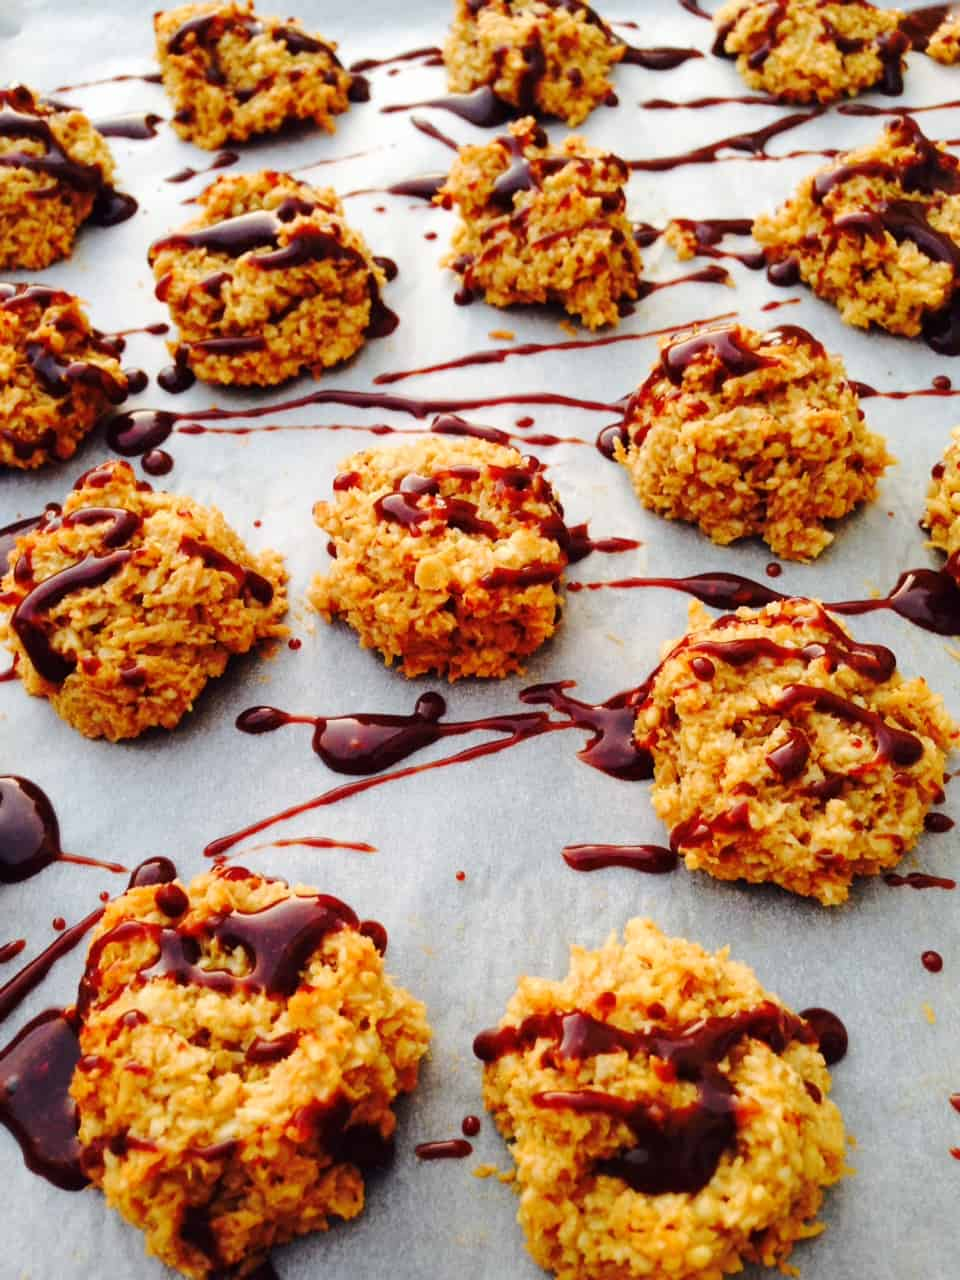 Healthy coconut and almond macaroons recipe Almond Macaroons Recipe Uk